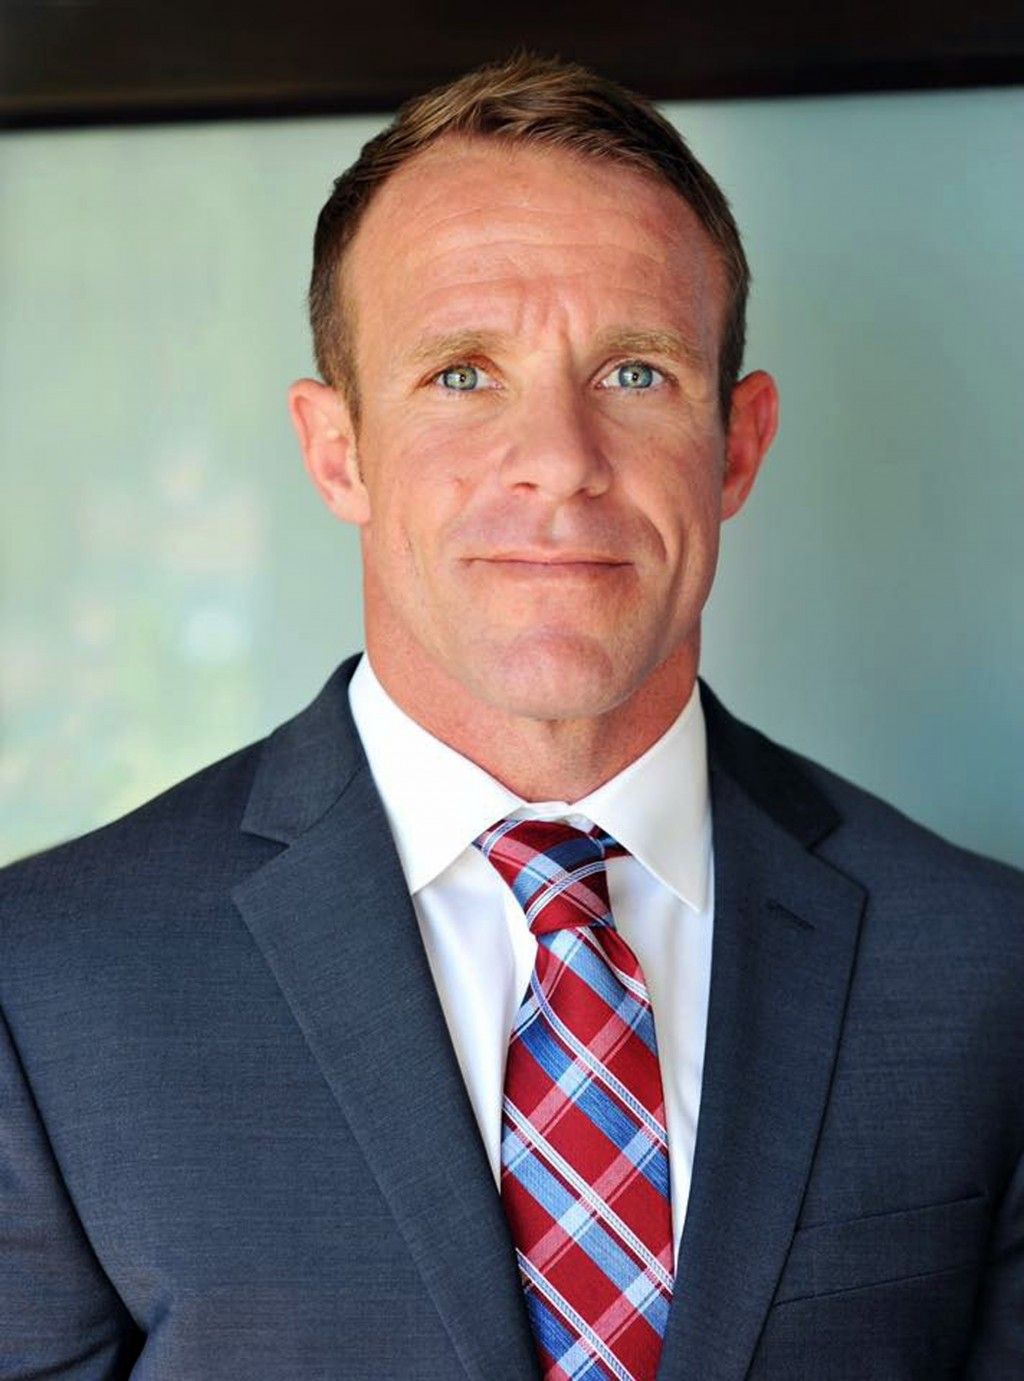 FILE - This 2018 file photo provided by Andrea Gallagher shows her husband, Navy SEAL Edward Gallagher, who has been charged with murder in the 2017 d